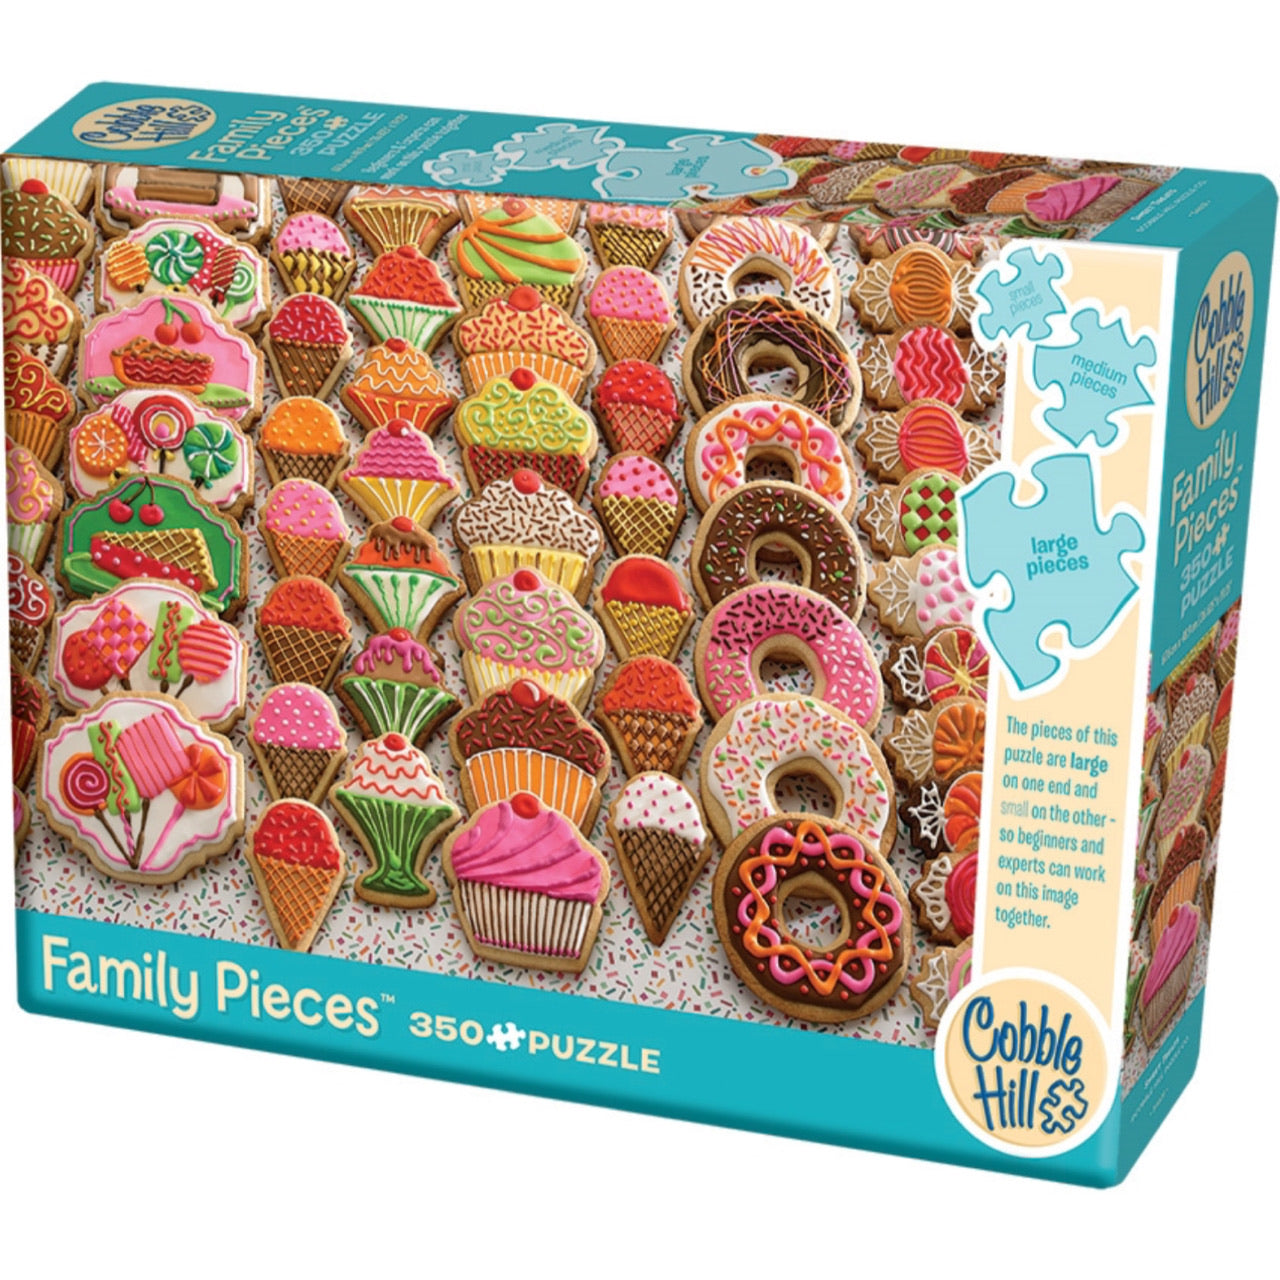 Sweet Treats 350 Piece Family Puzzle